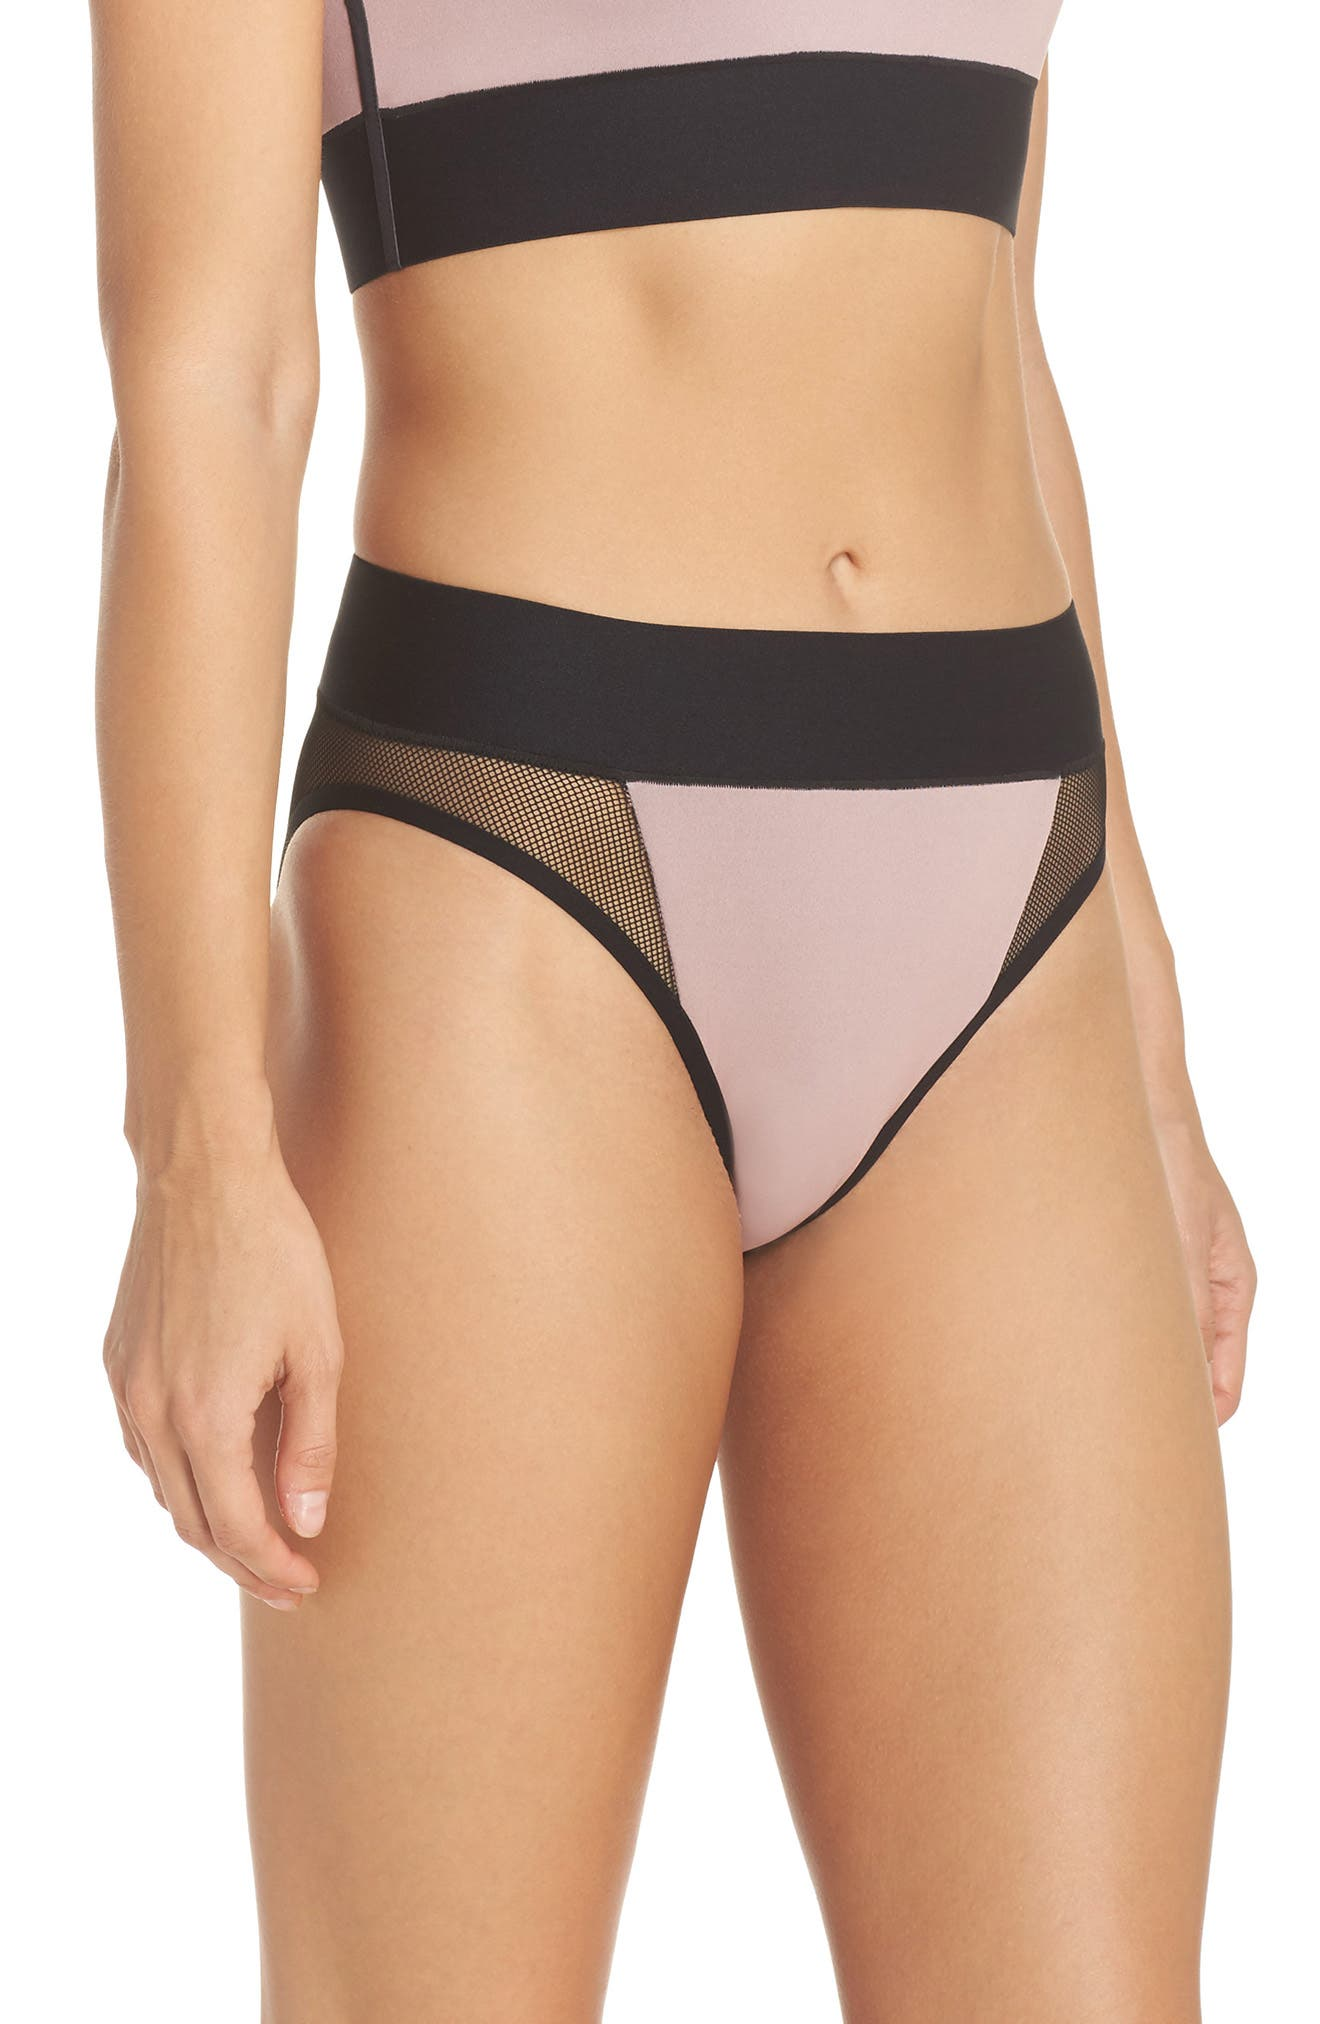 Reef Sport Mesh High-Waist Bikini Bottoms,                             Alternate thumbnail 3, color,                             Blush Pink